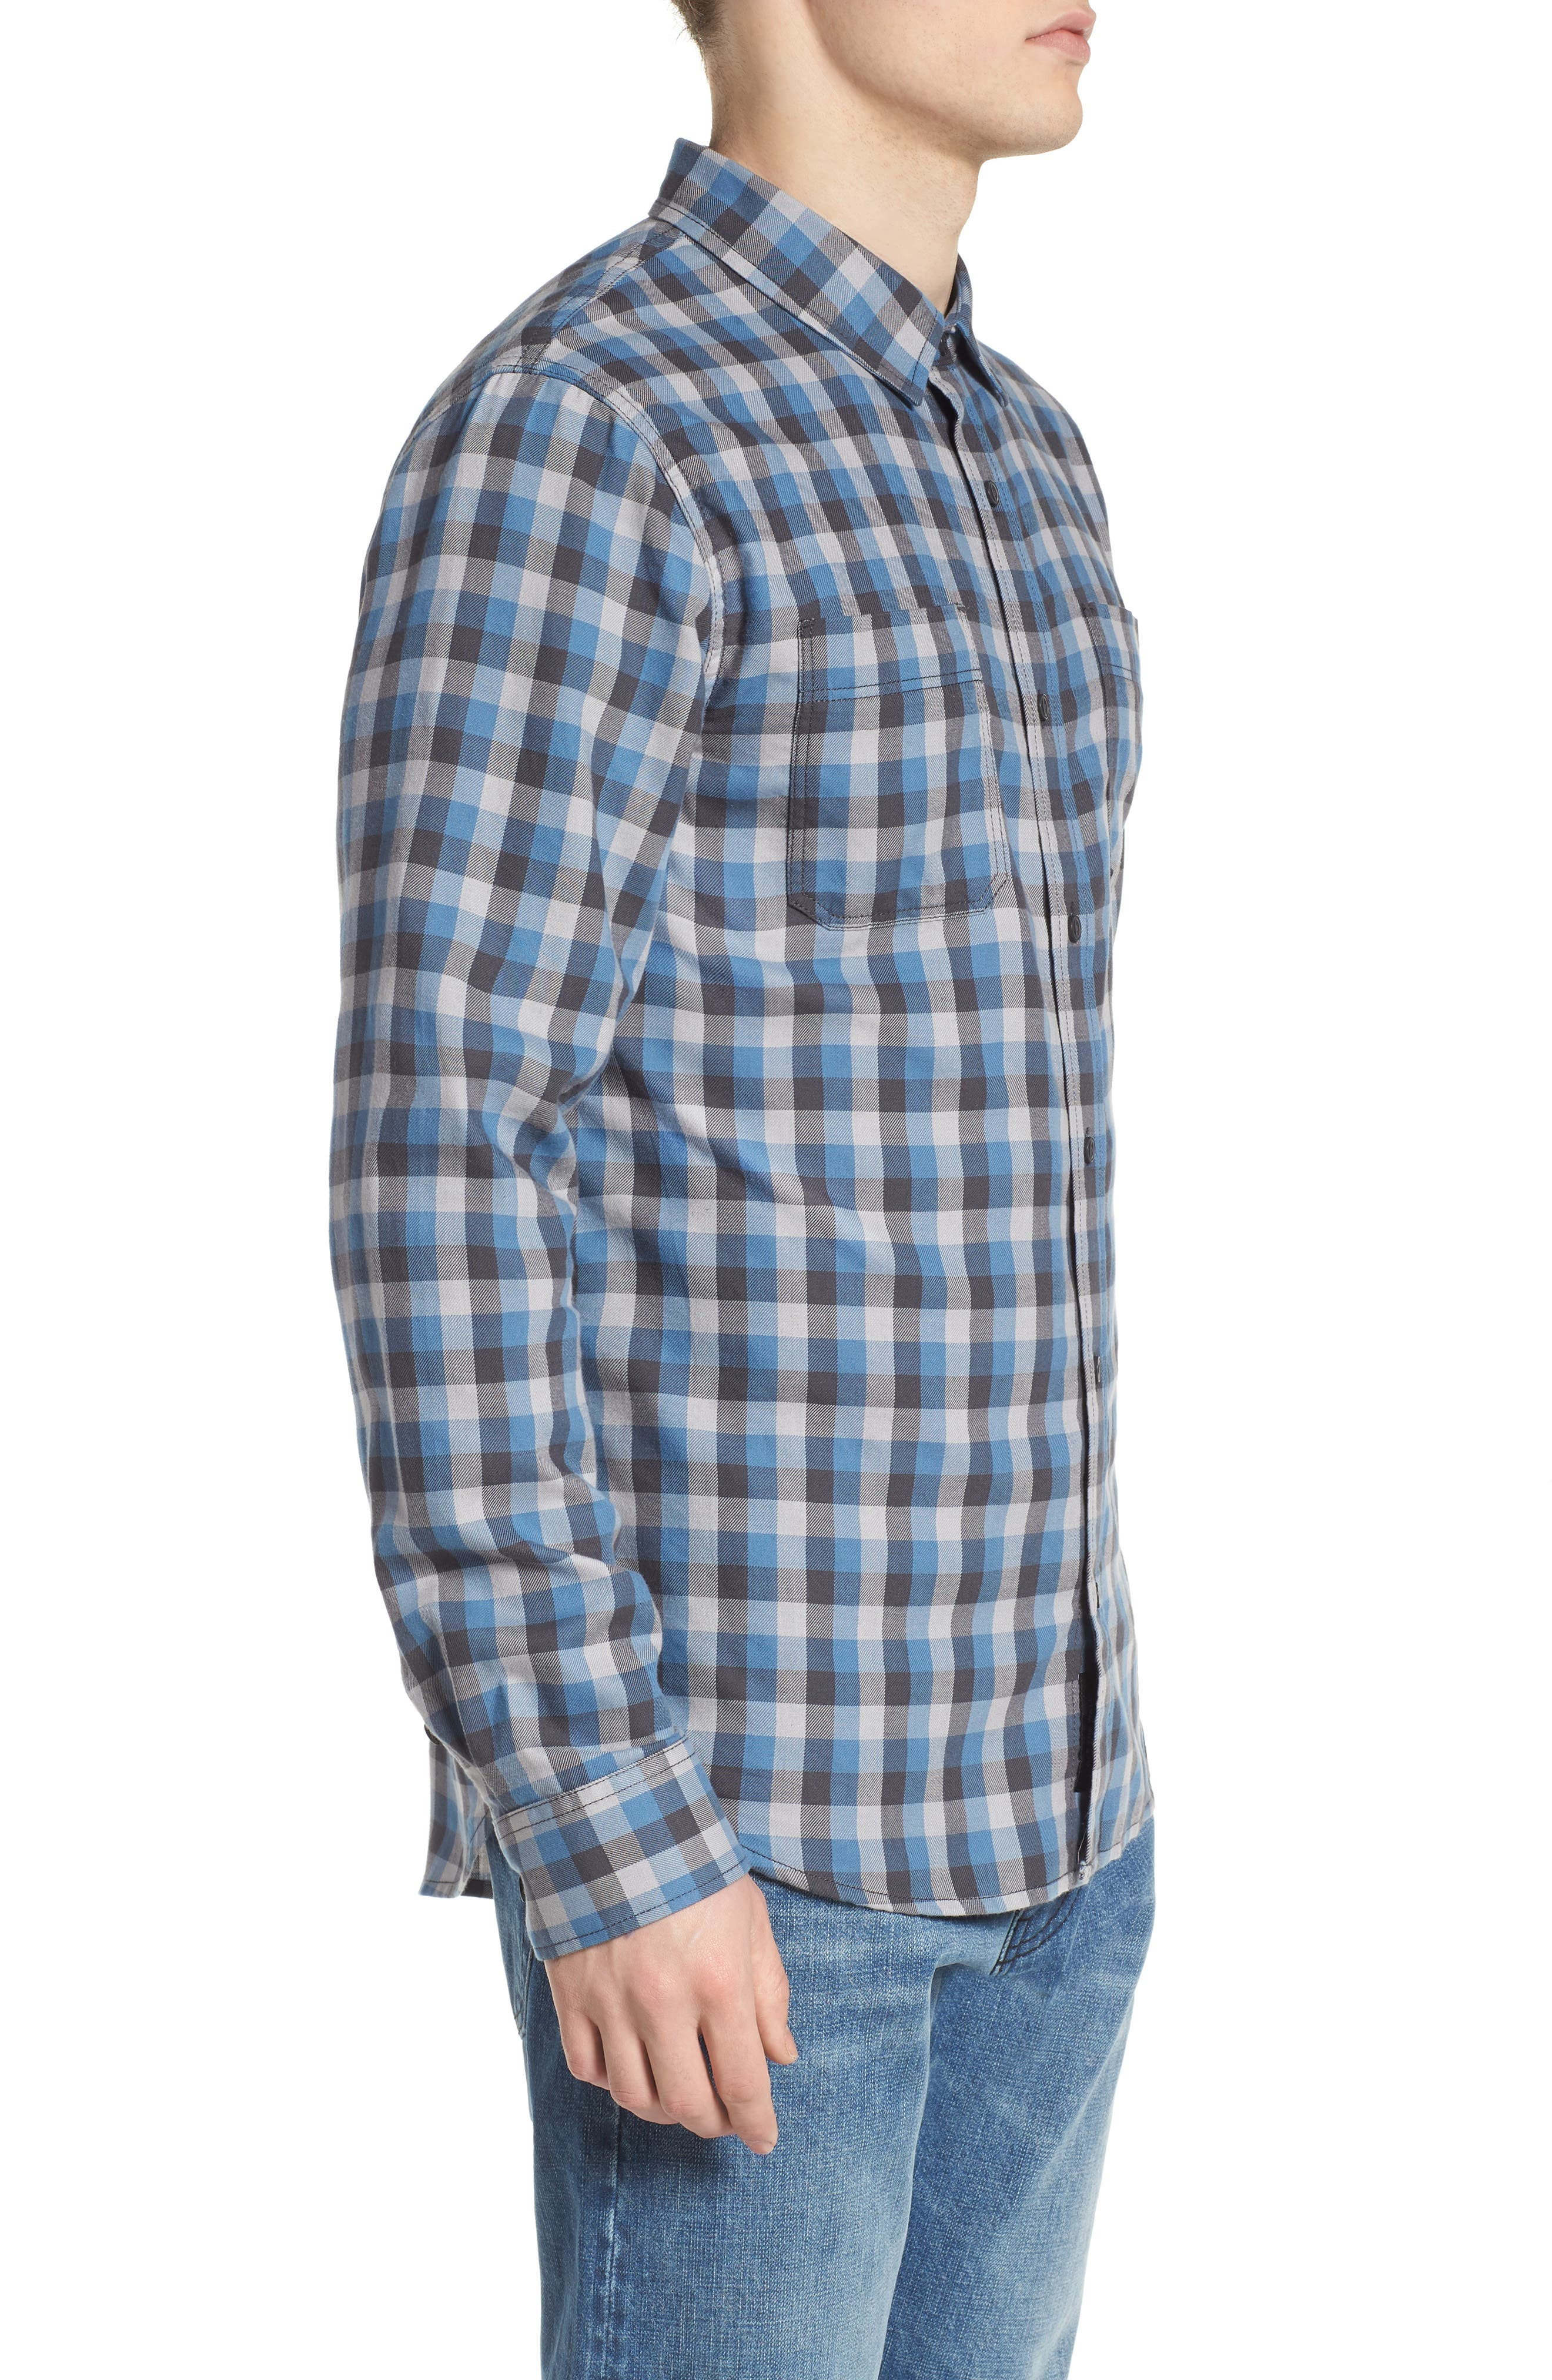 Alameda II Plaid Flannel Shirt,                             Alternate thumbnail 3, color,                             Asphalt/ Copen Blue